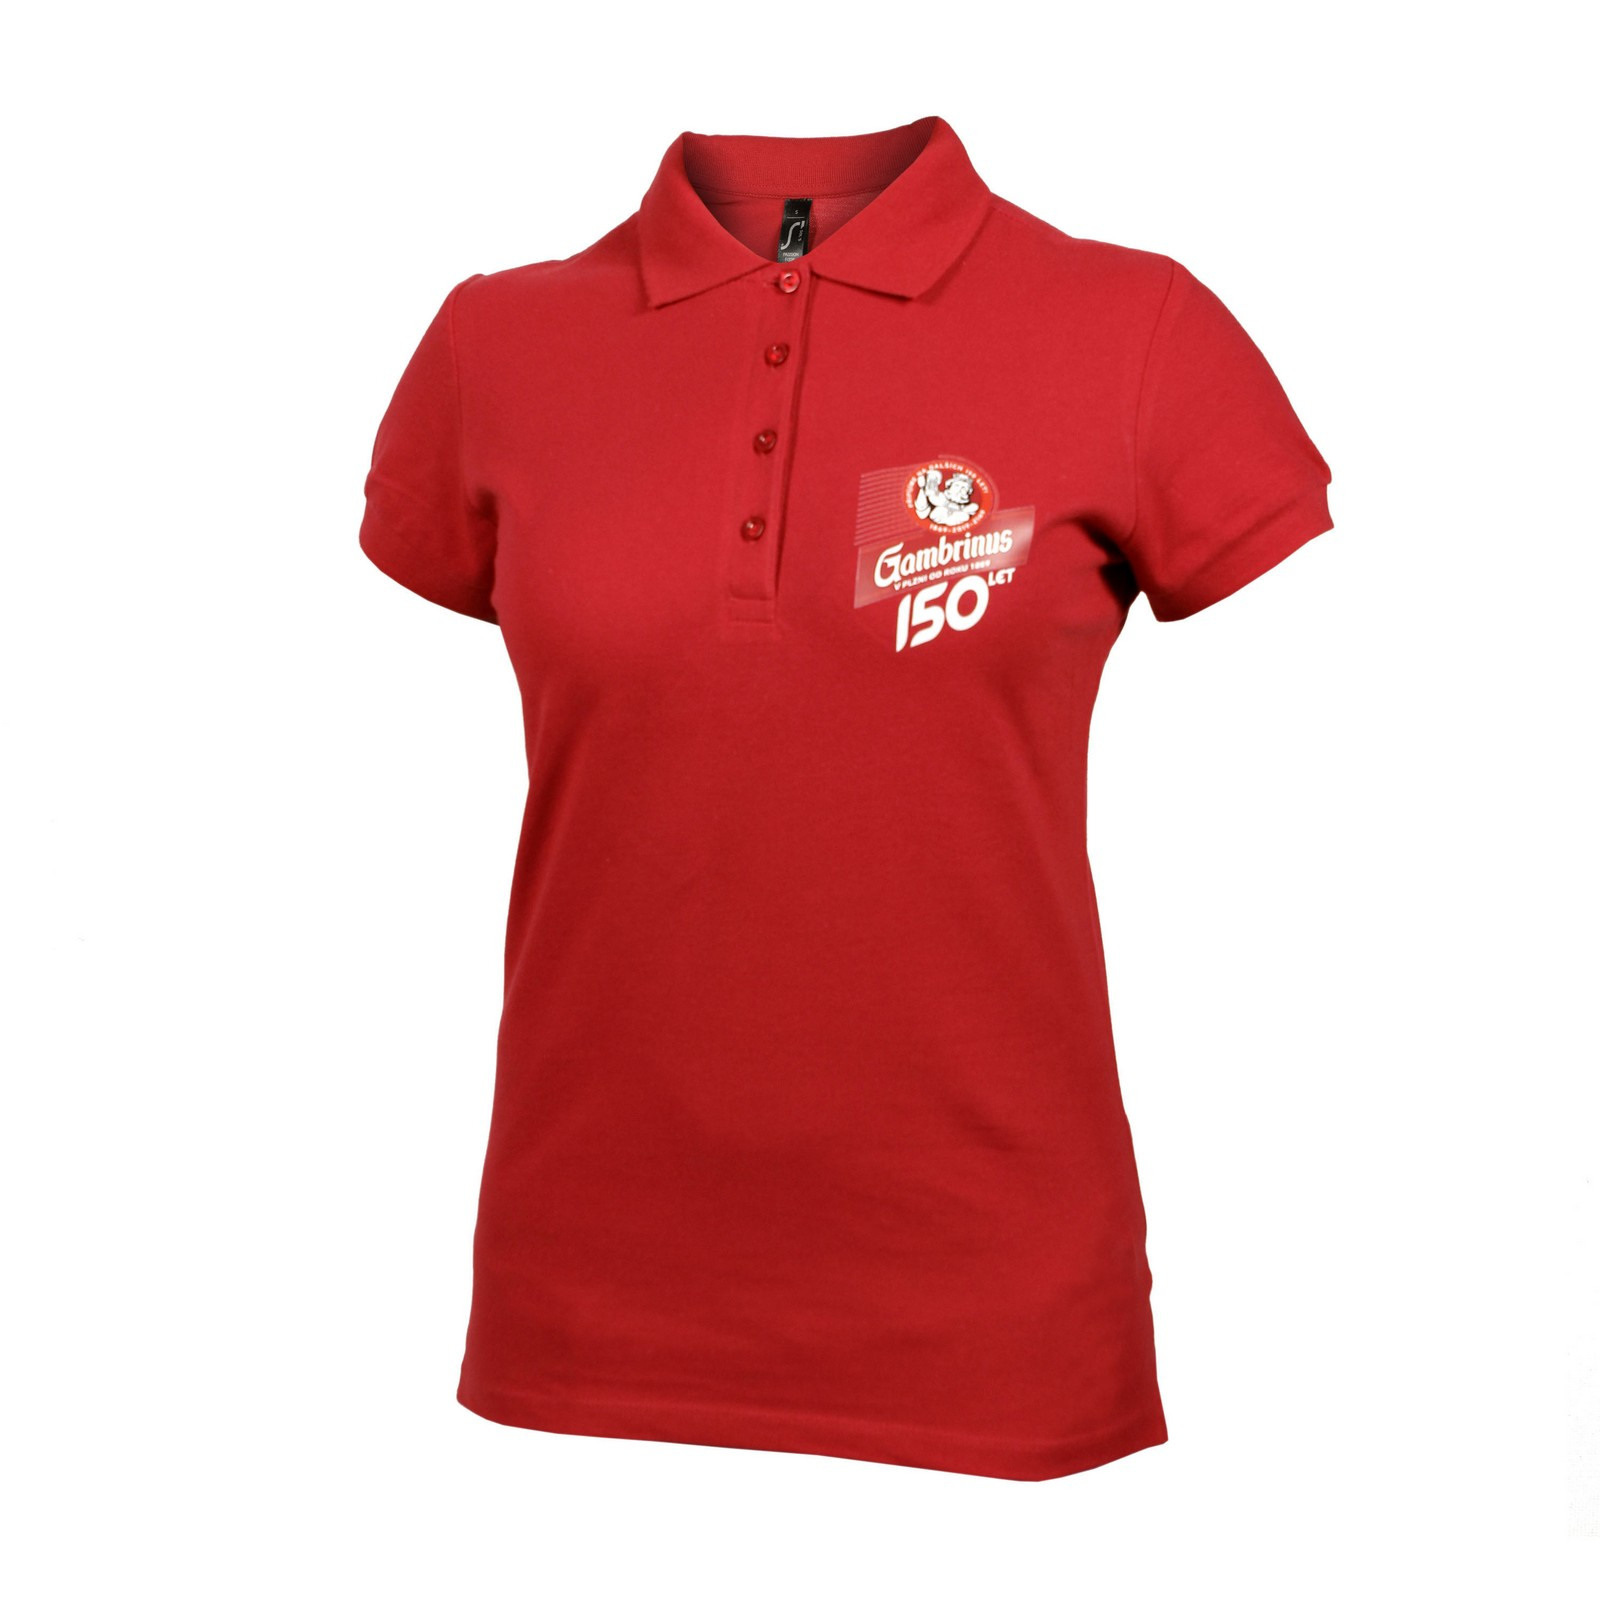 Ladies' polo shirt 150 years of Gambrinus – red